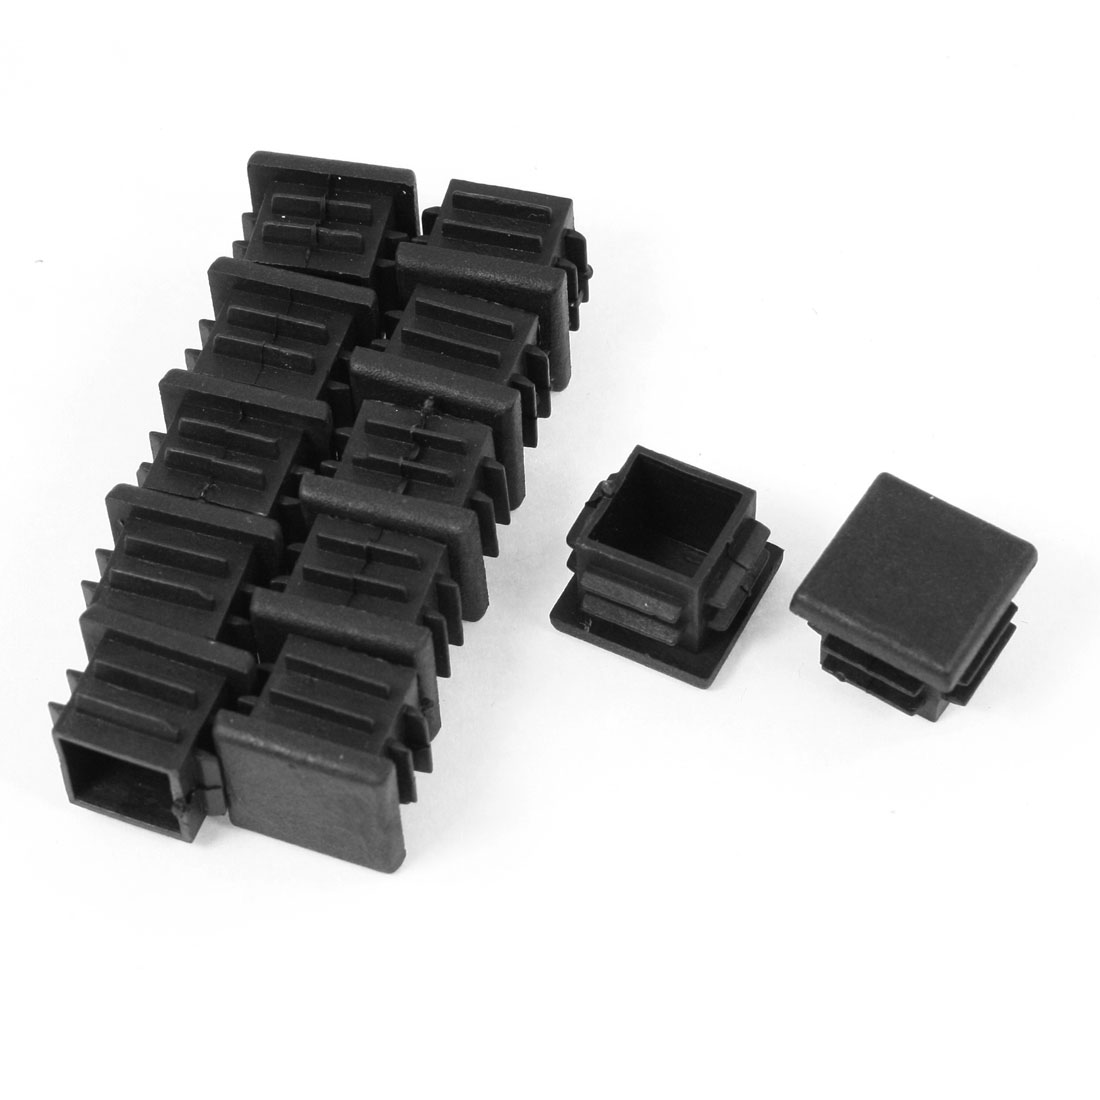 12 Pcs 19mm x 19mm Plastic Blanking End Caps Cover Square Tubing Tube Pipe Insert Black